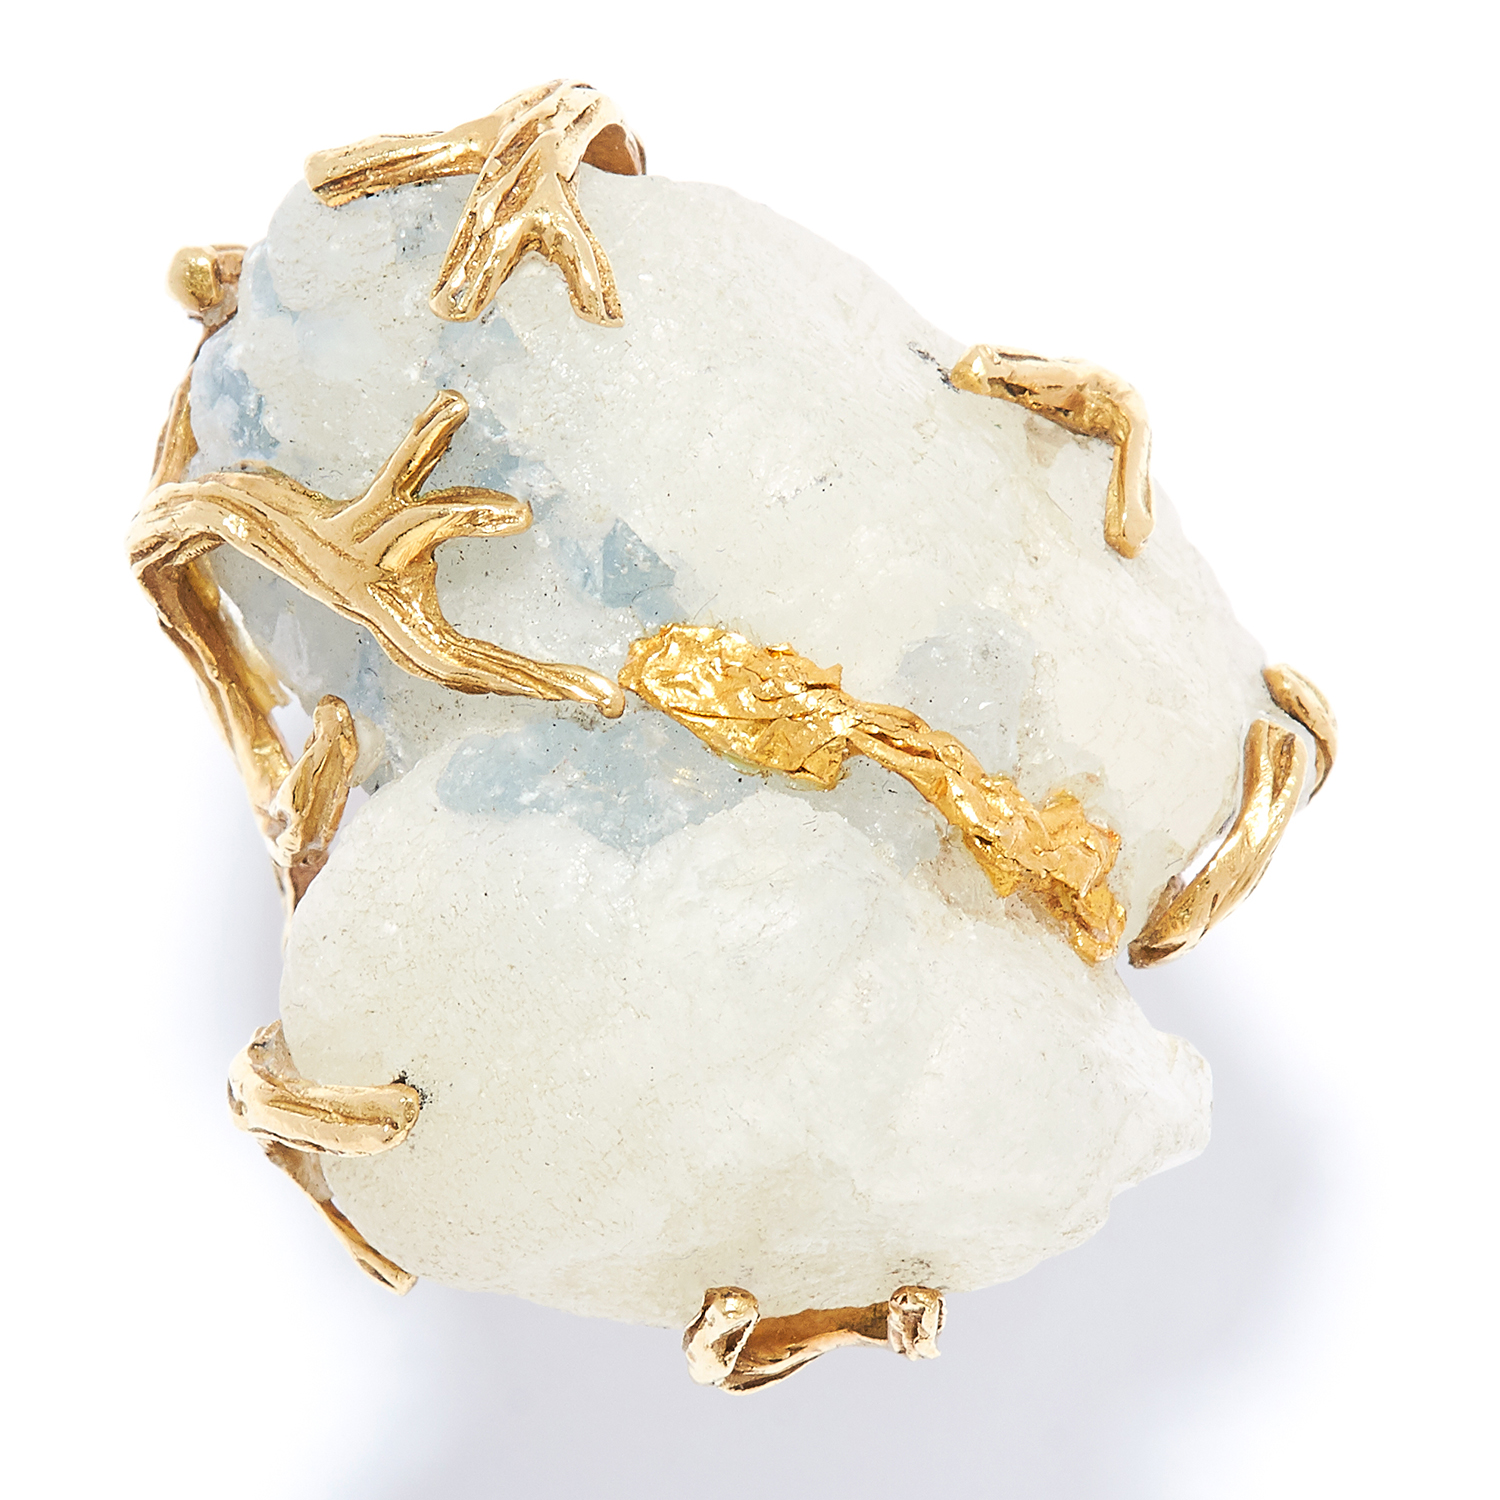 QUARTZ DRESS RING in high carat yellow gold, set with rough cut quartz in abstract gold design,